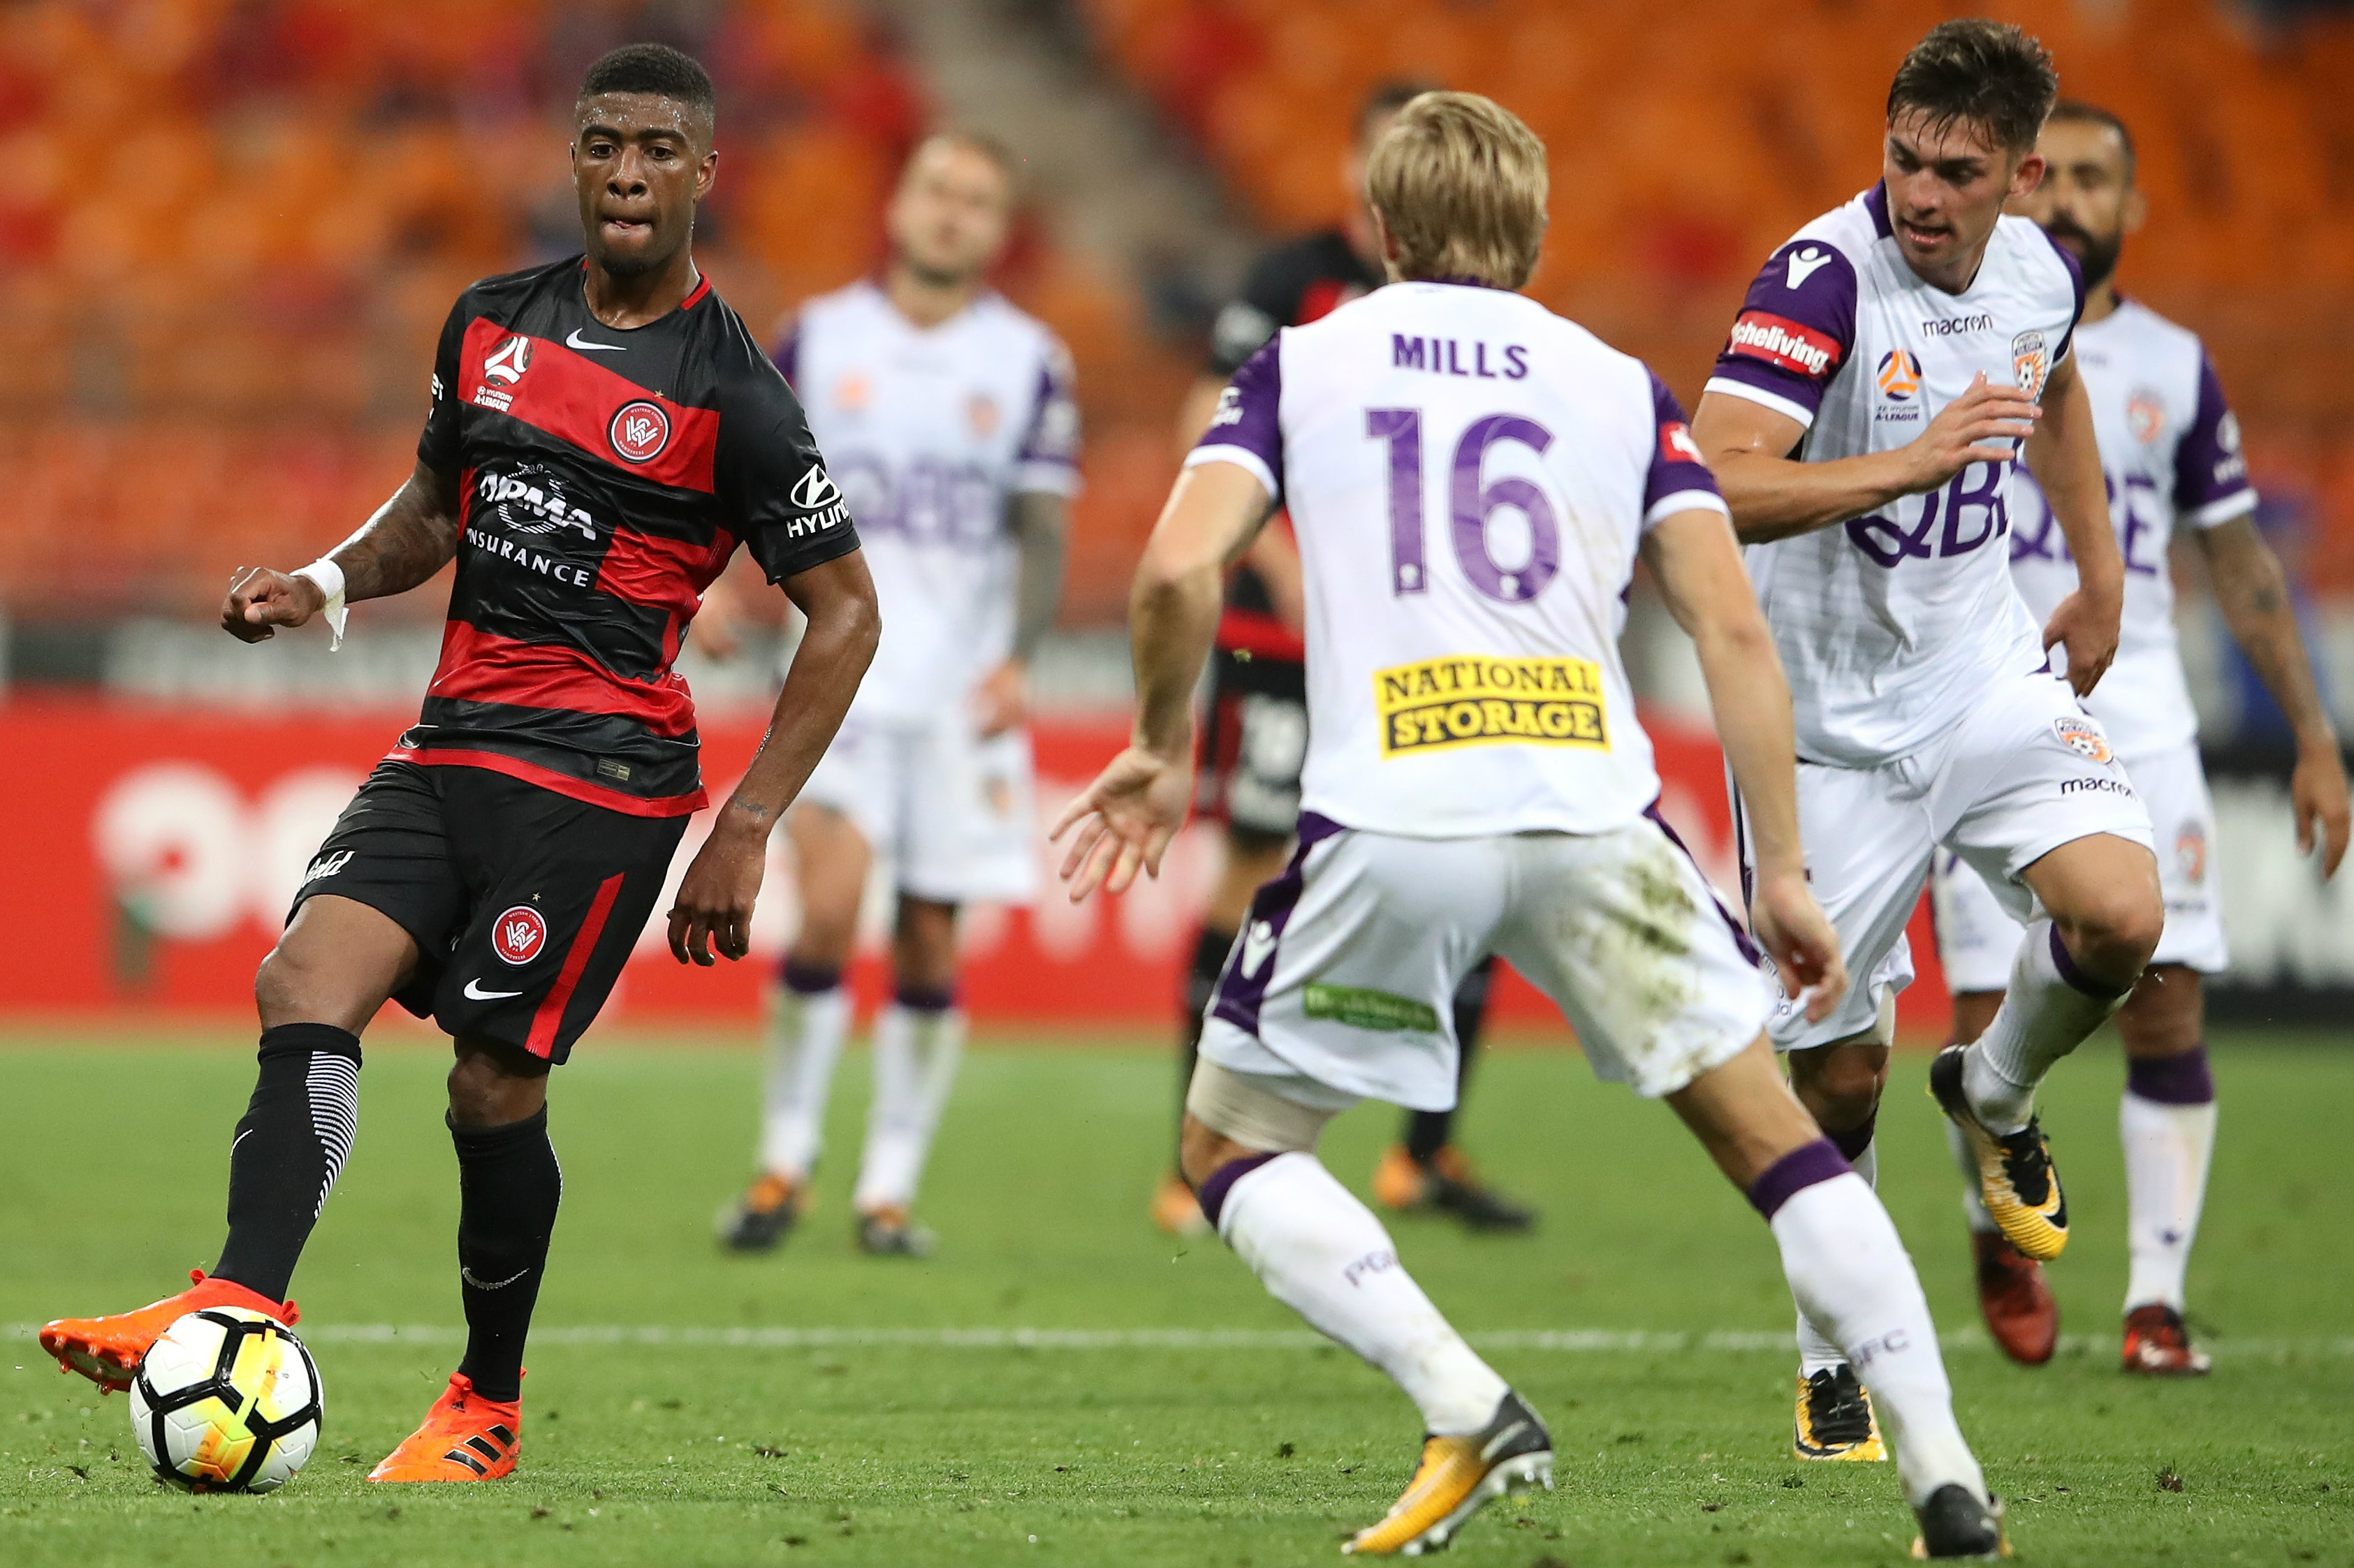 Bonevacia looks set for a big season at Wanderland.